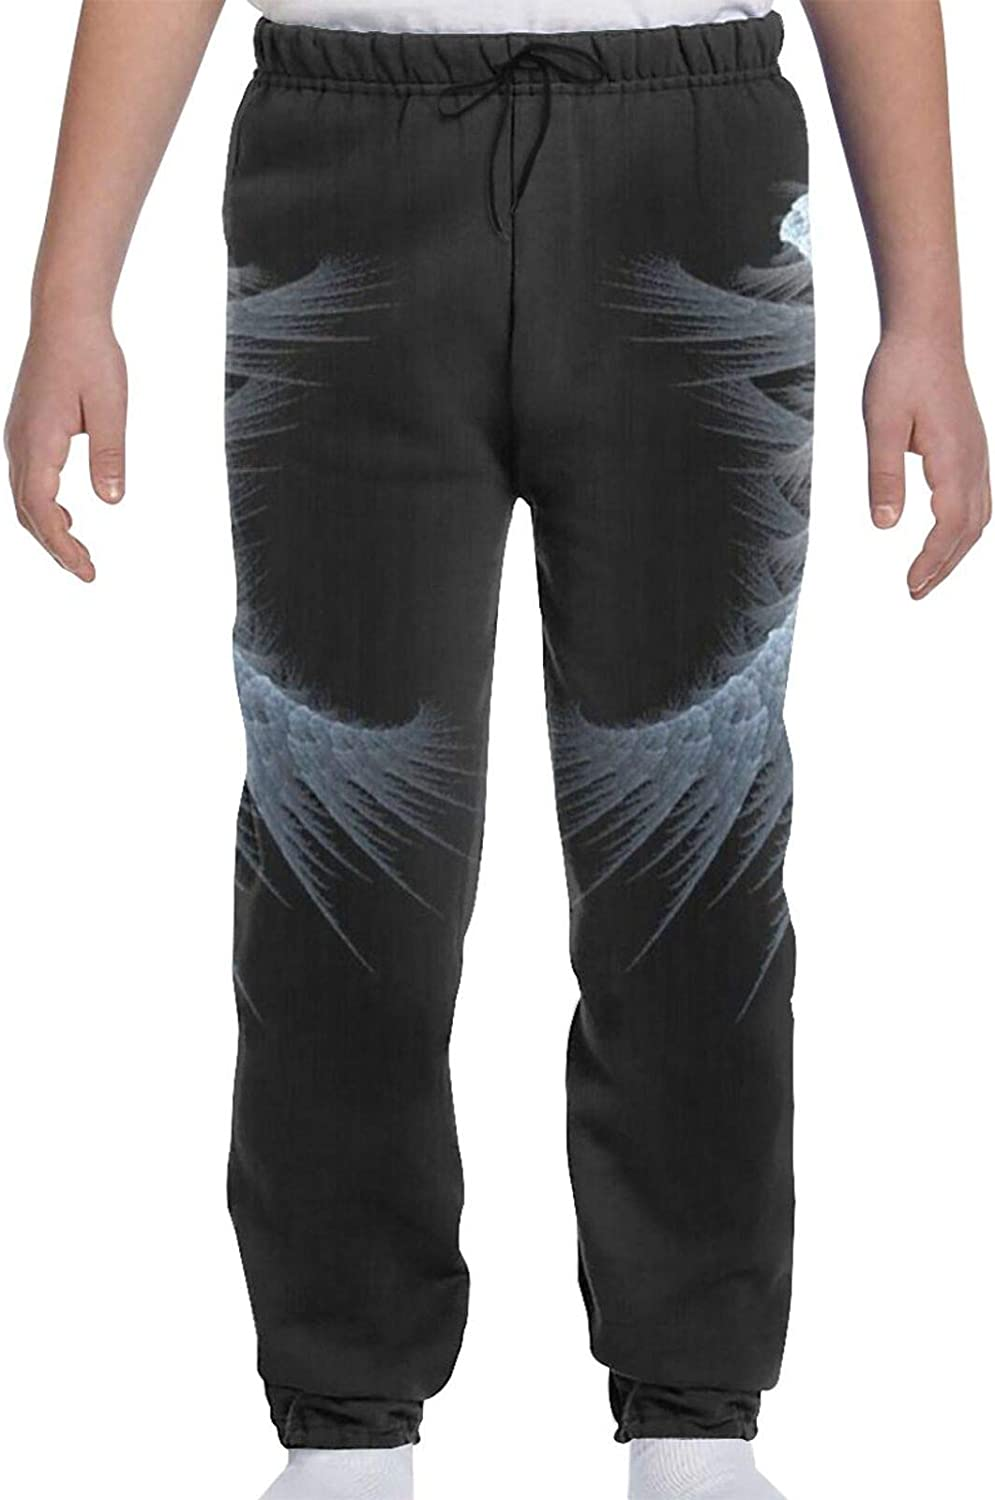 Abstract Art Under blast sales Youth Sweatpants 3D Girl Boys Print Max 53% OFF Teens Trousers